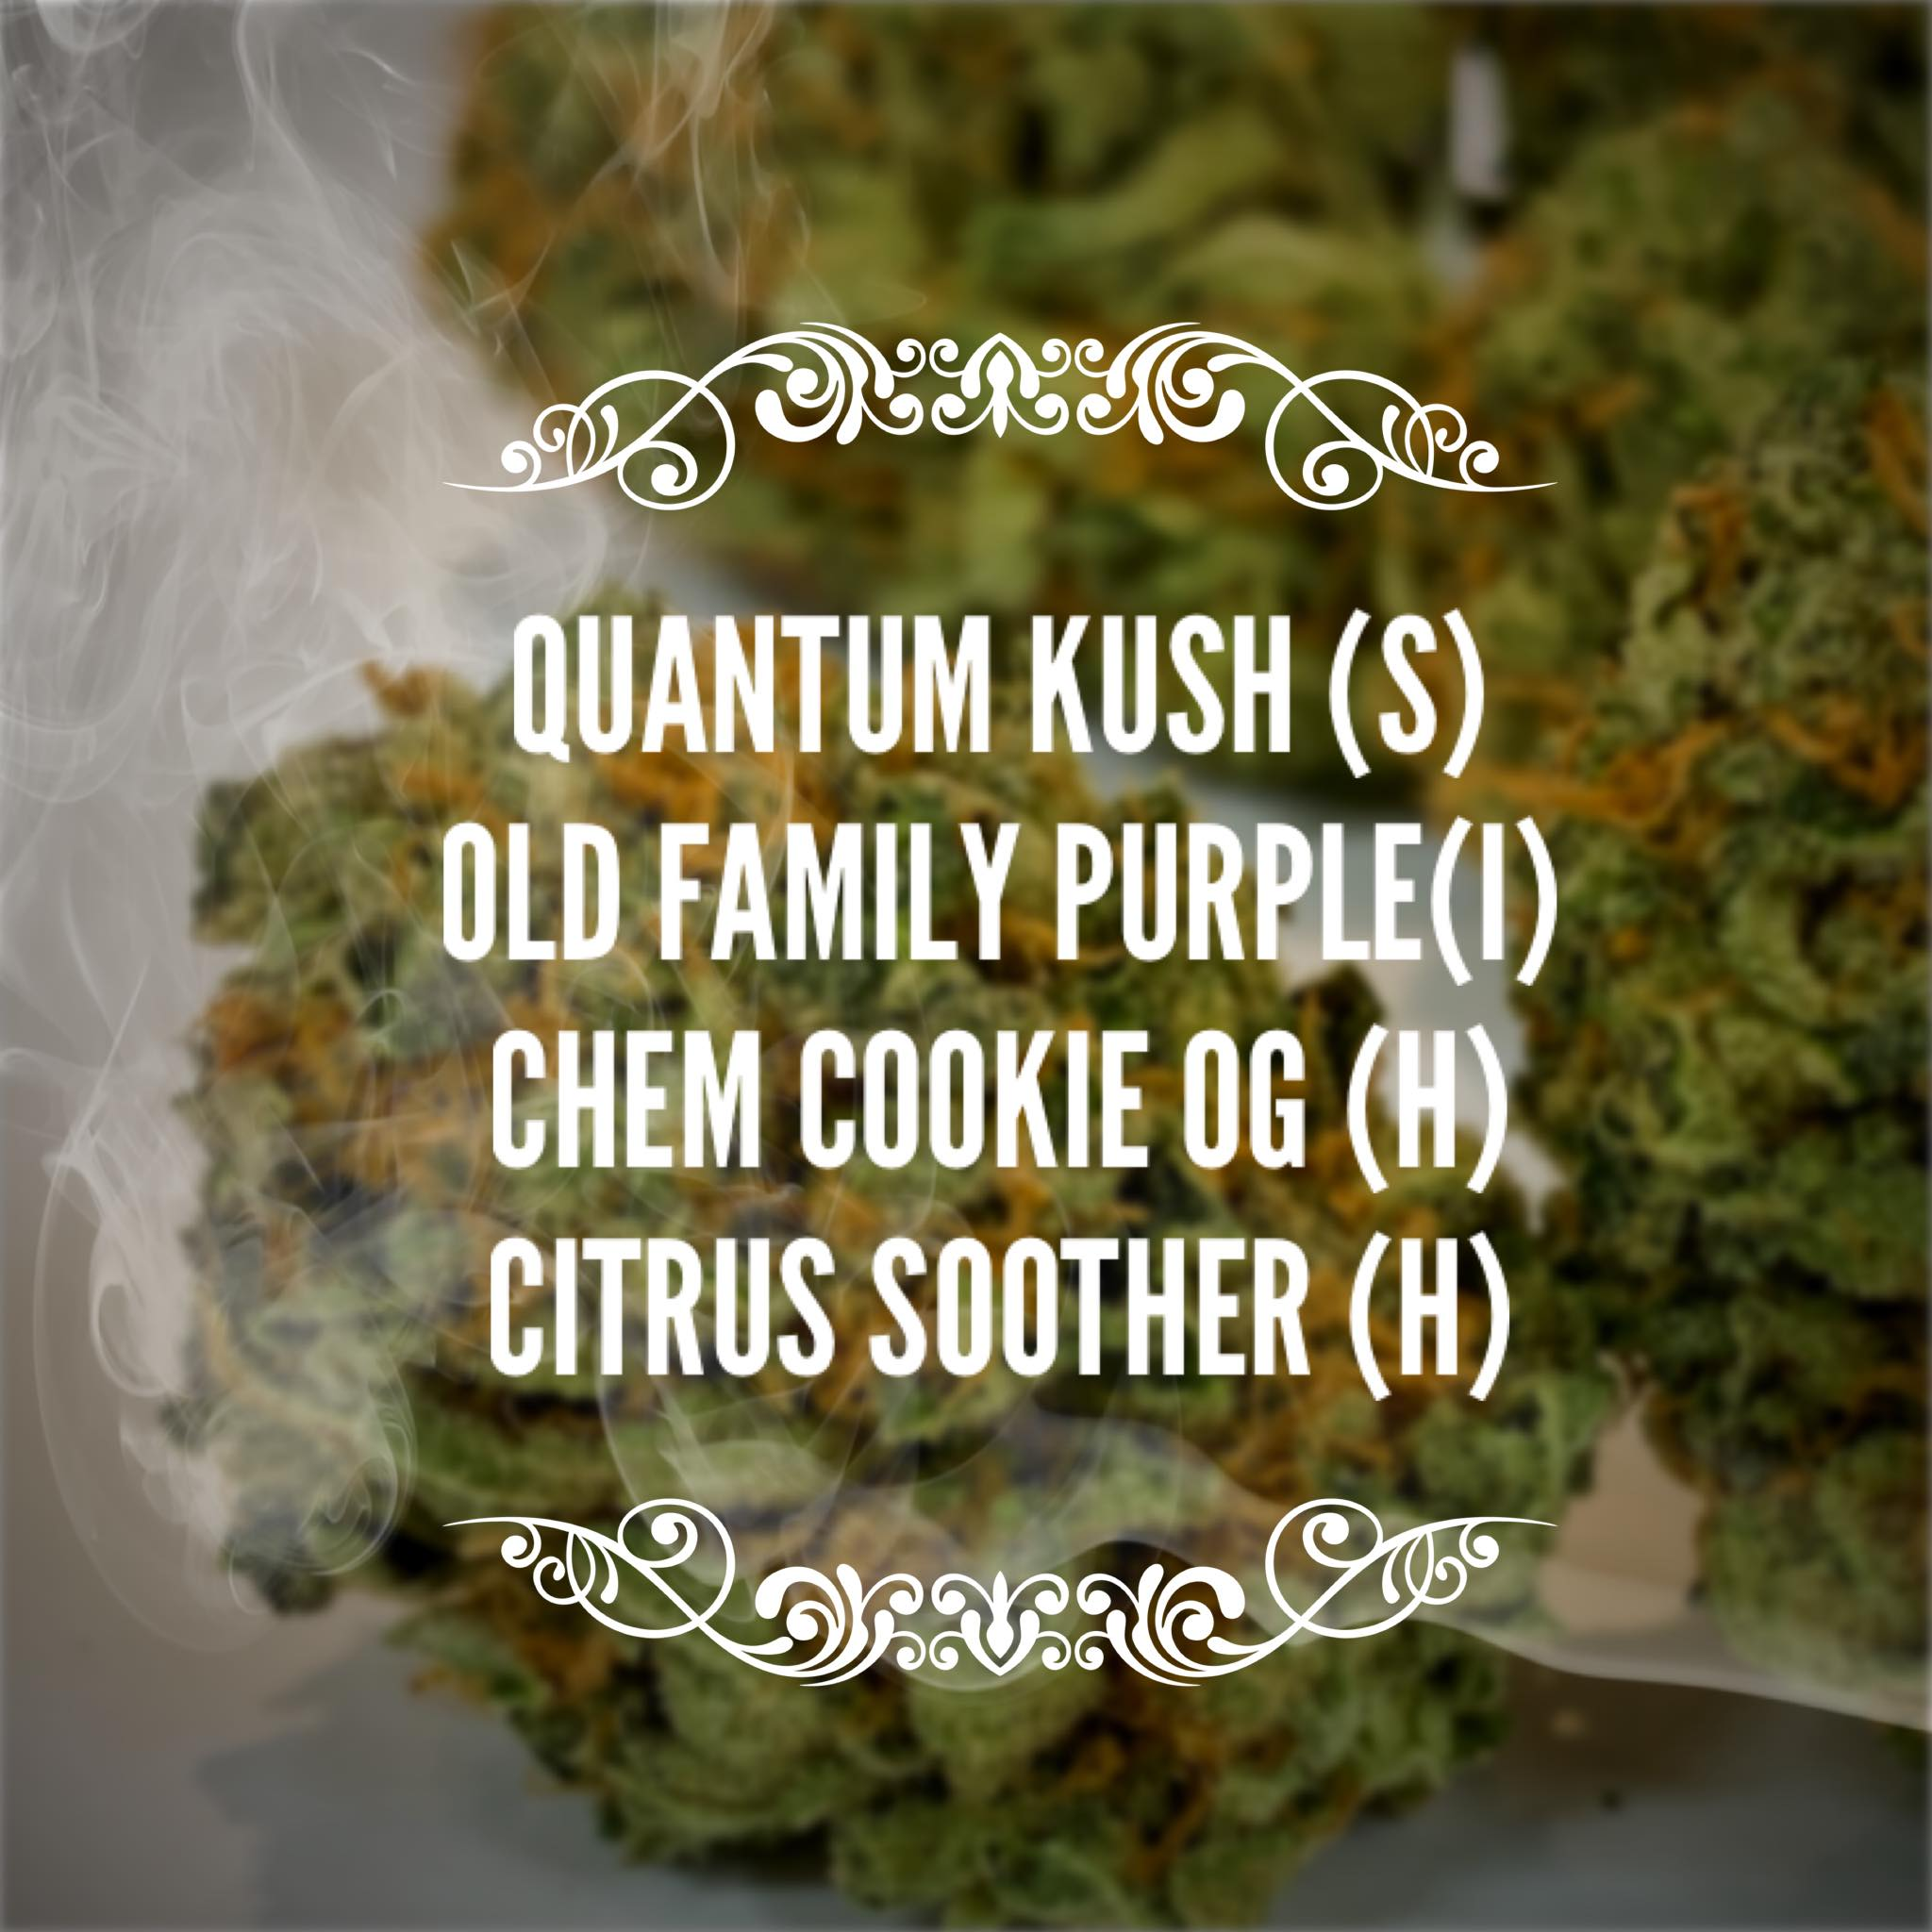 quantum kush old fam purp strains